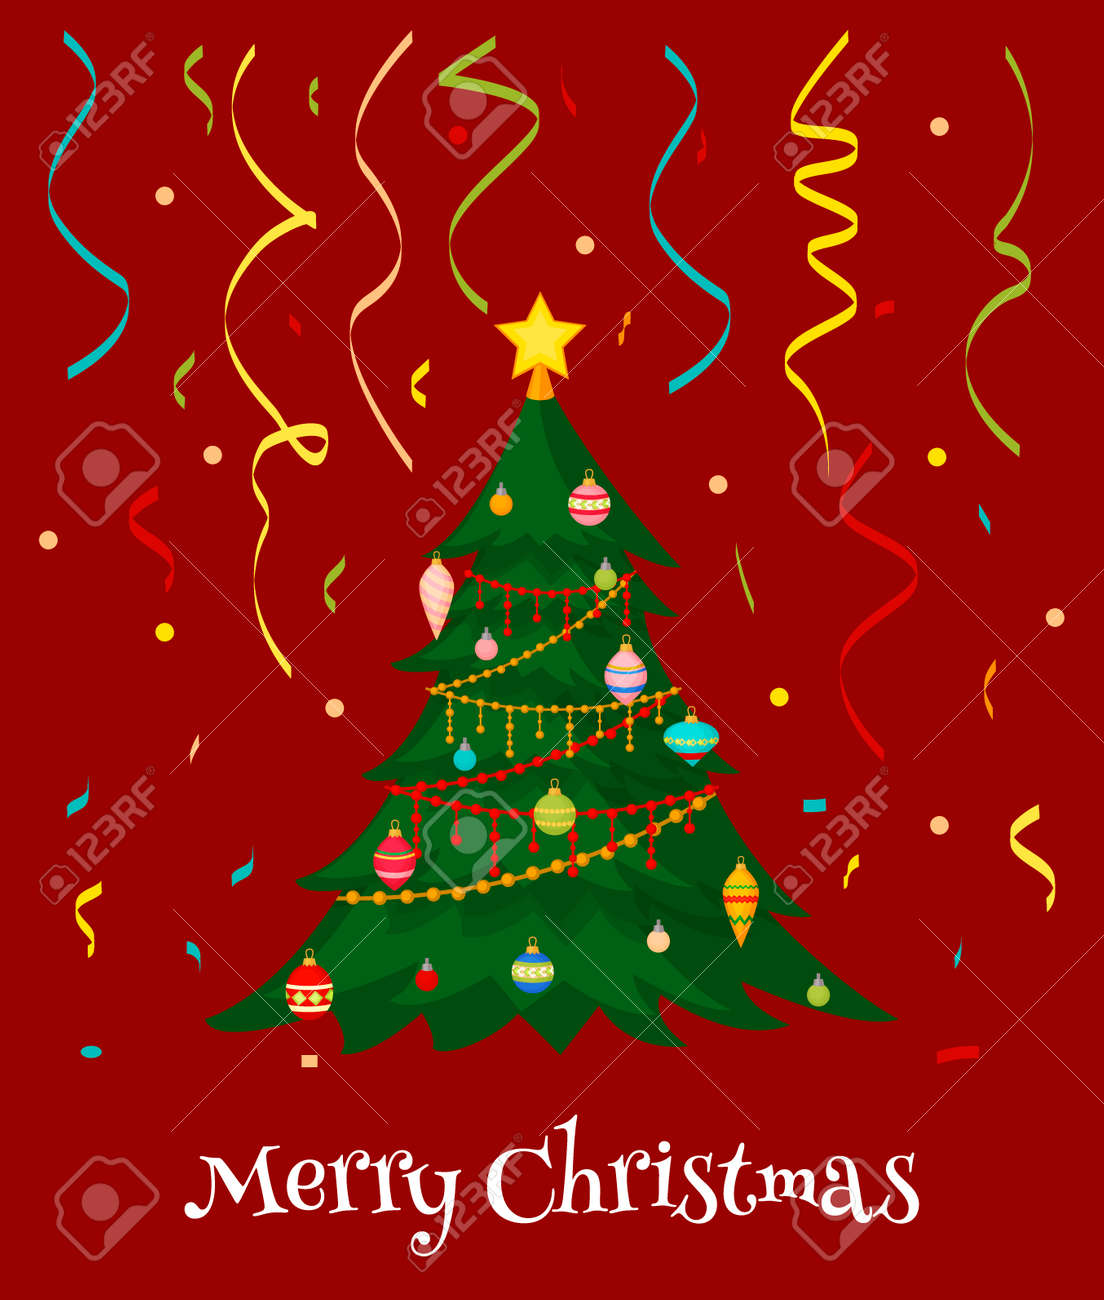 Christmas Tree With Fir Gifts Balls Lights Winter Holiday Gift